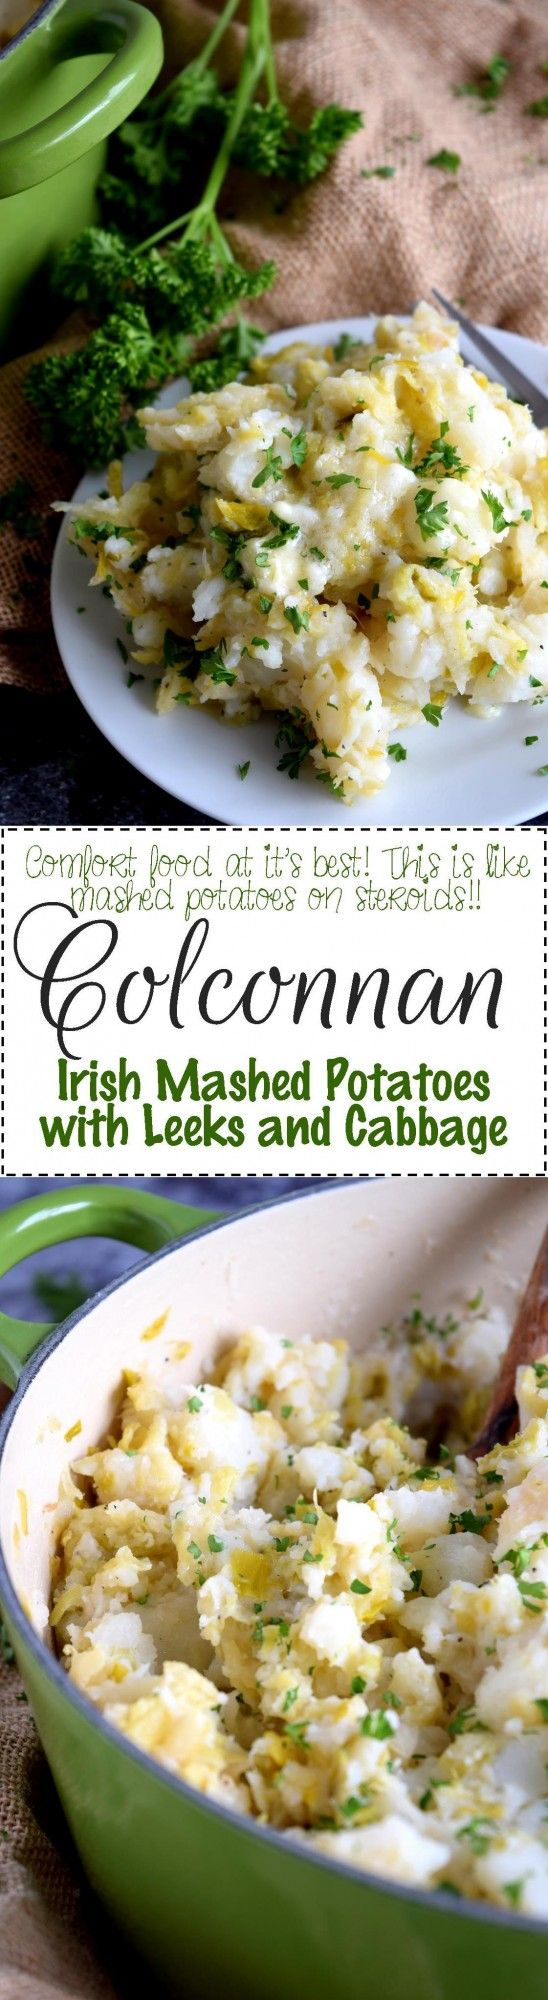 Colconnan - Irish Mashed Potatoes with Leeks and Cabbage - Lord Byron's Kitchen